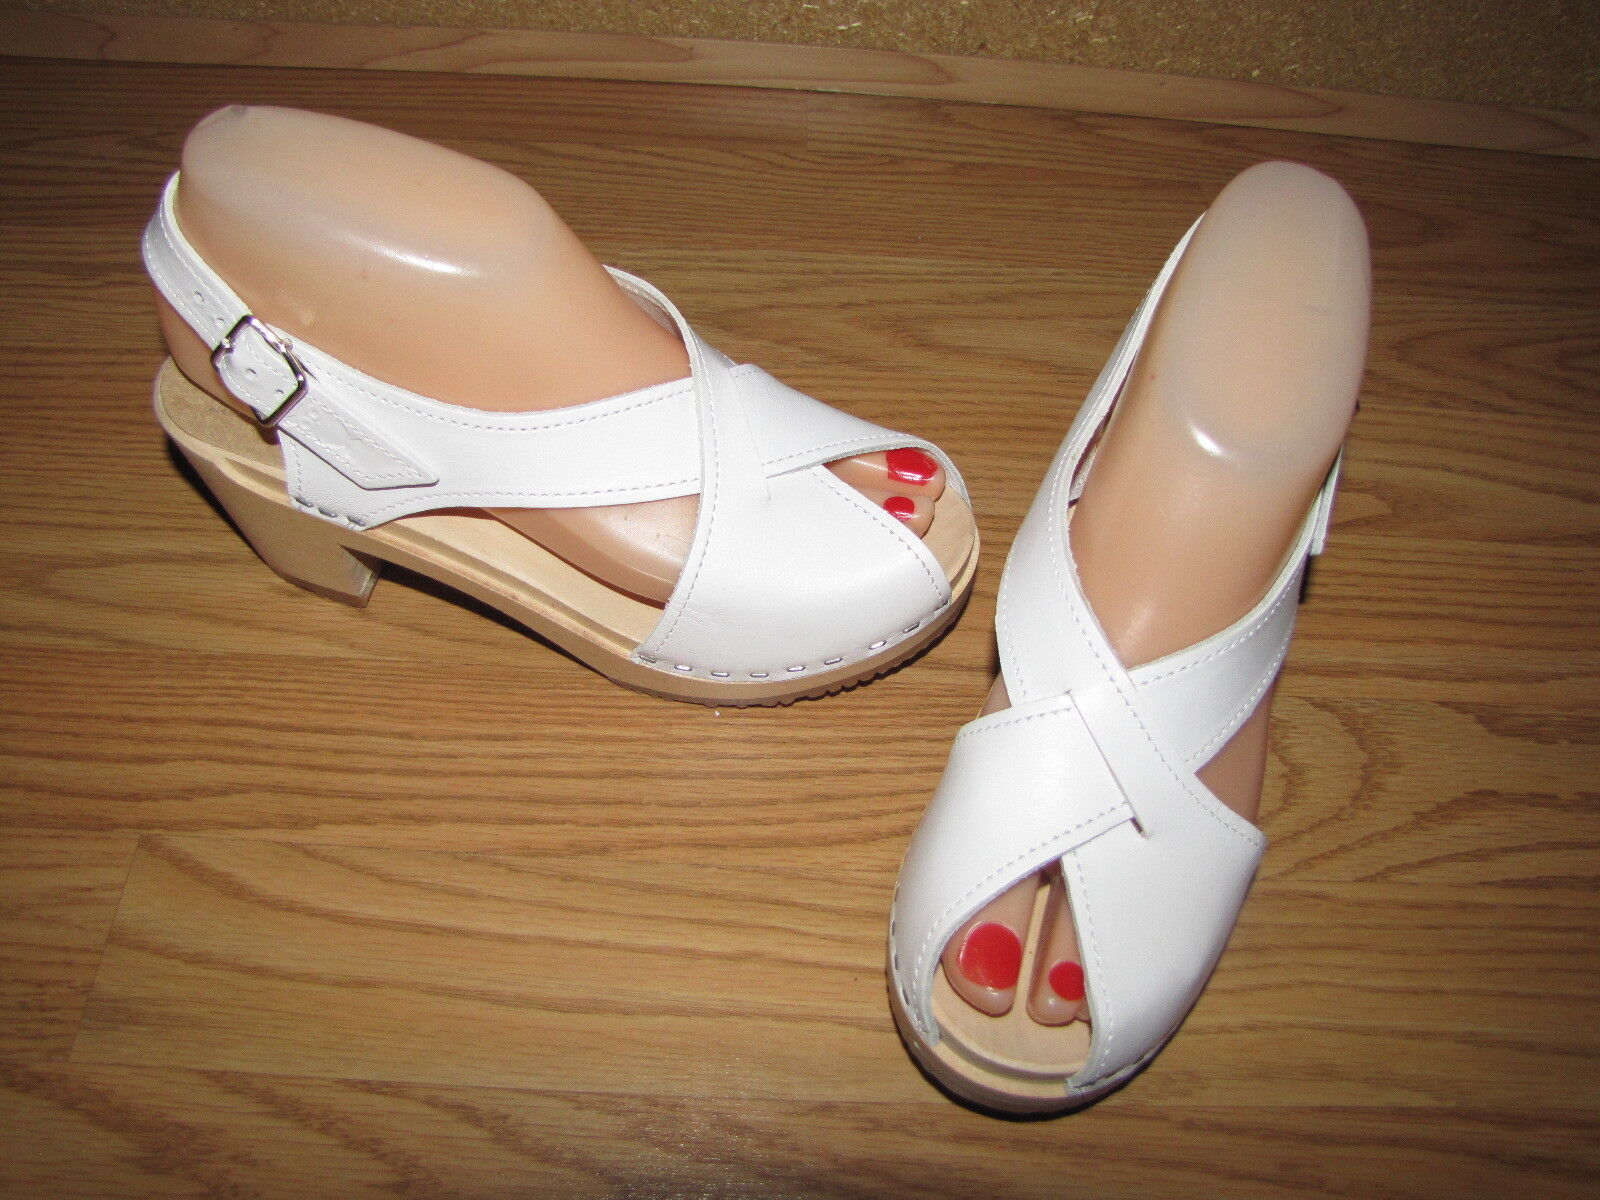 NWOB Anthropologie Sandgrens White Mgoldcco Criss Cross Clogs 6 Euro 36